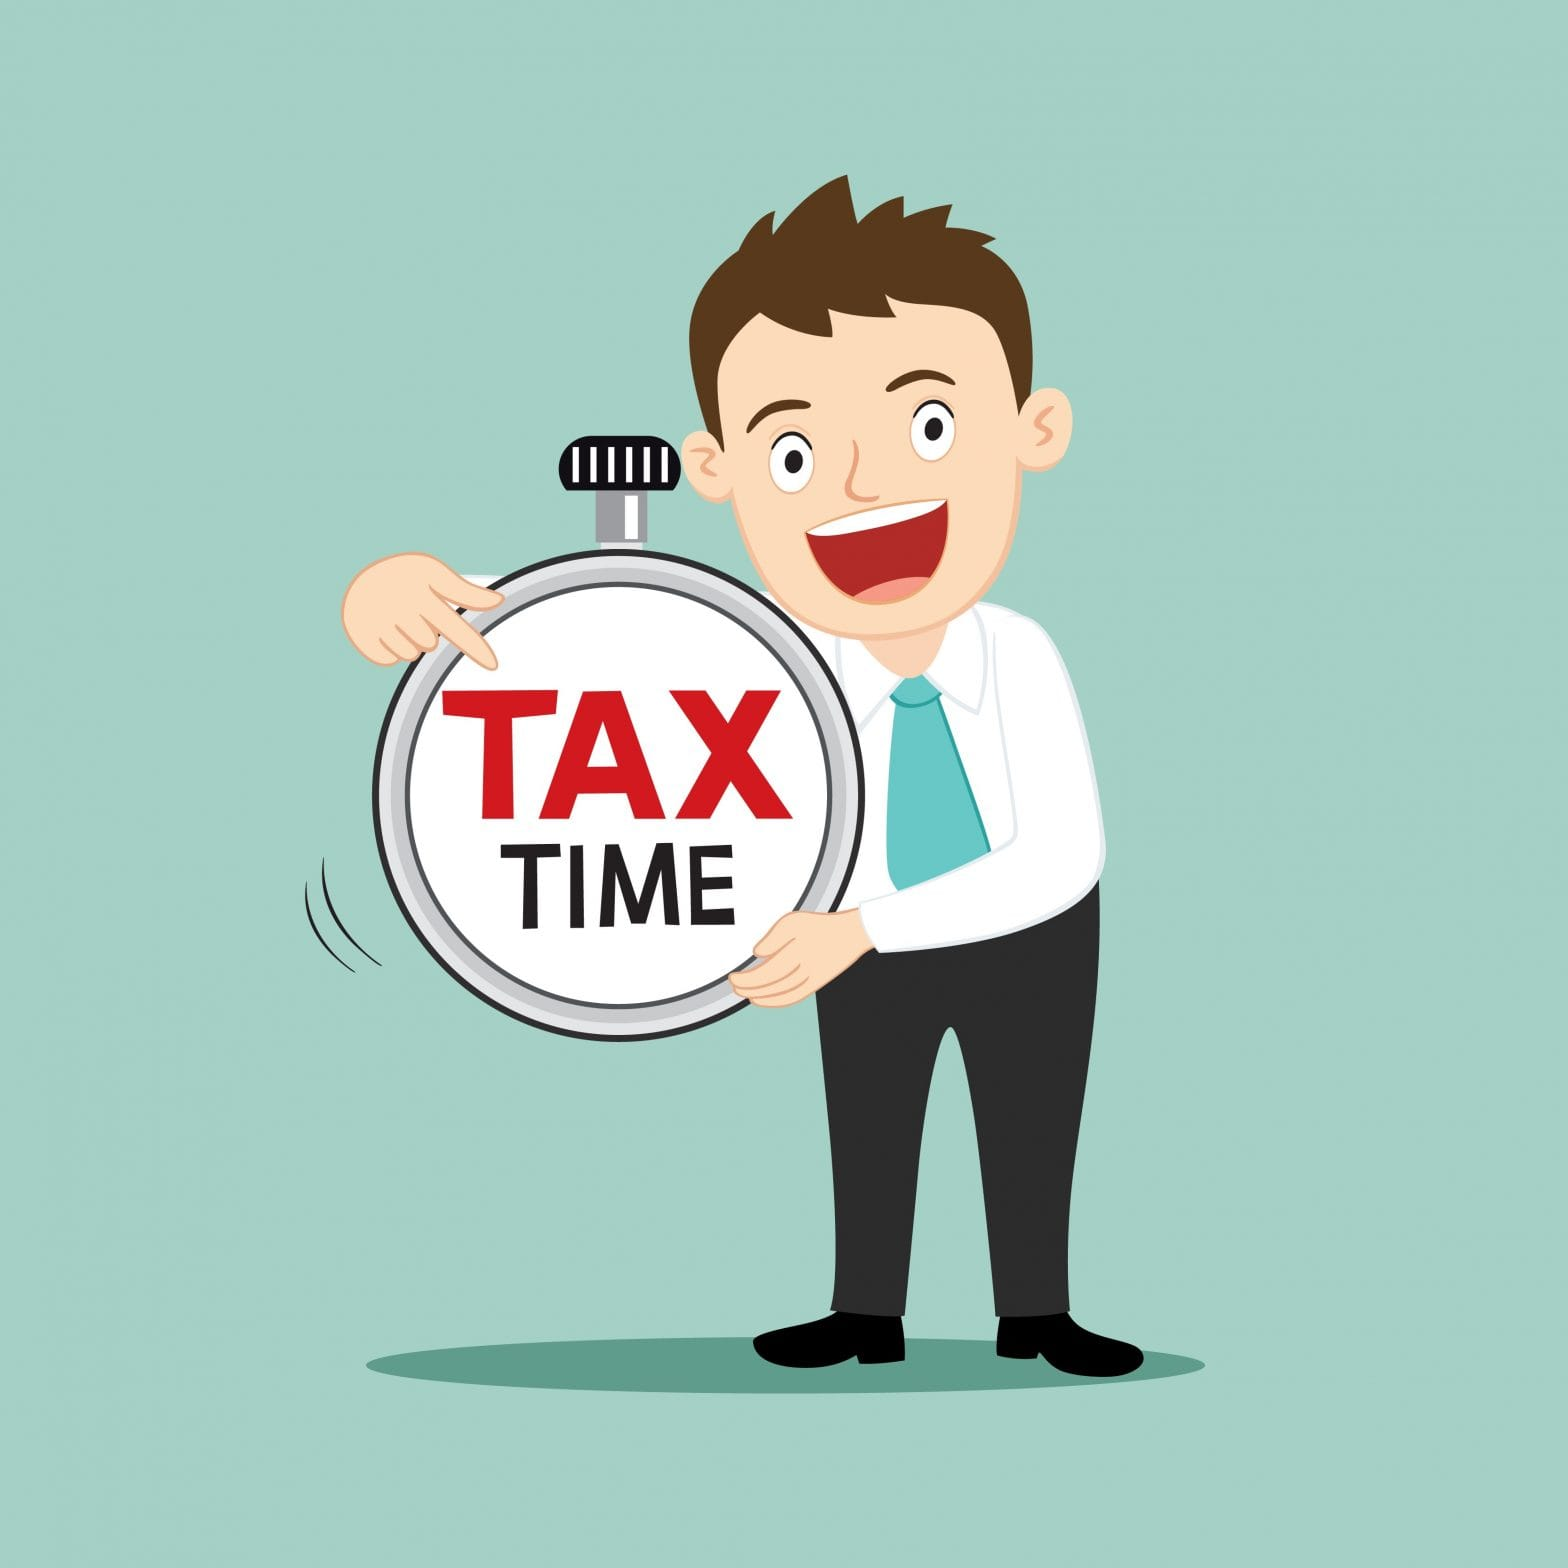 5 Tax Tips Your Workforce Should Know